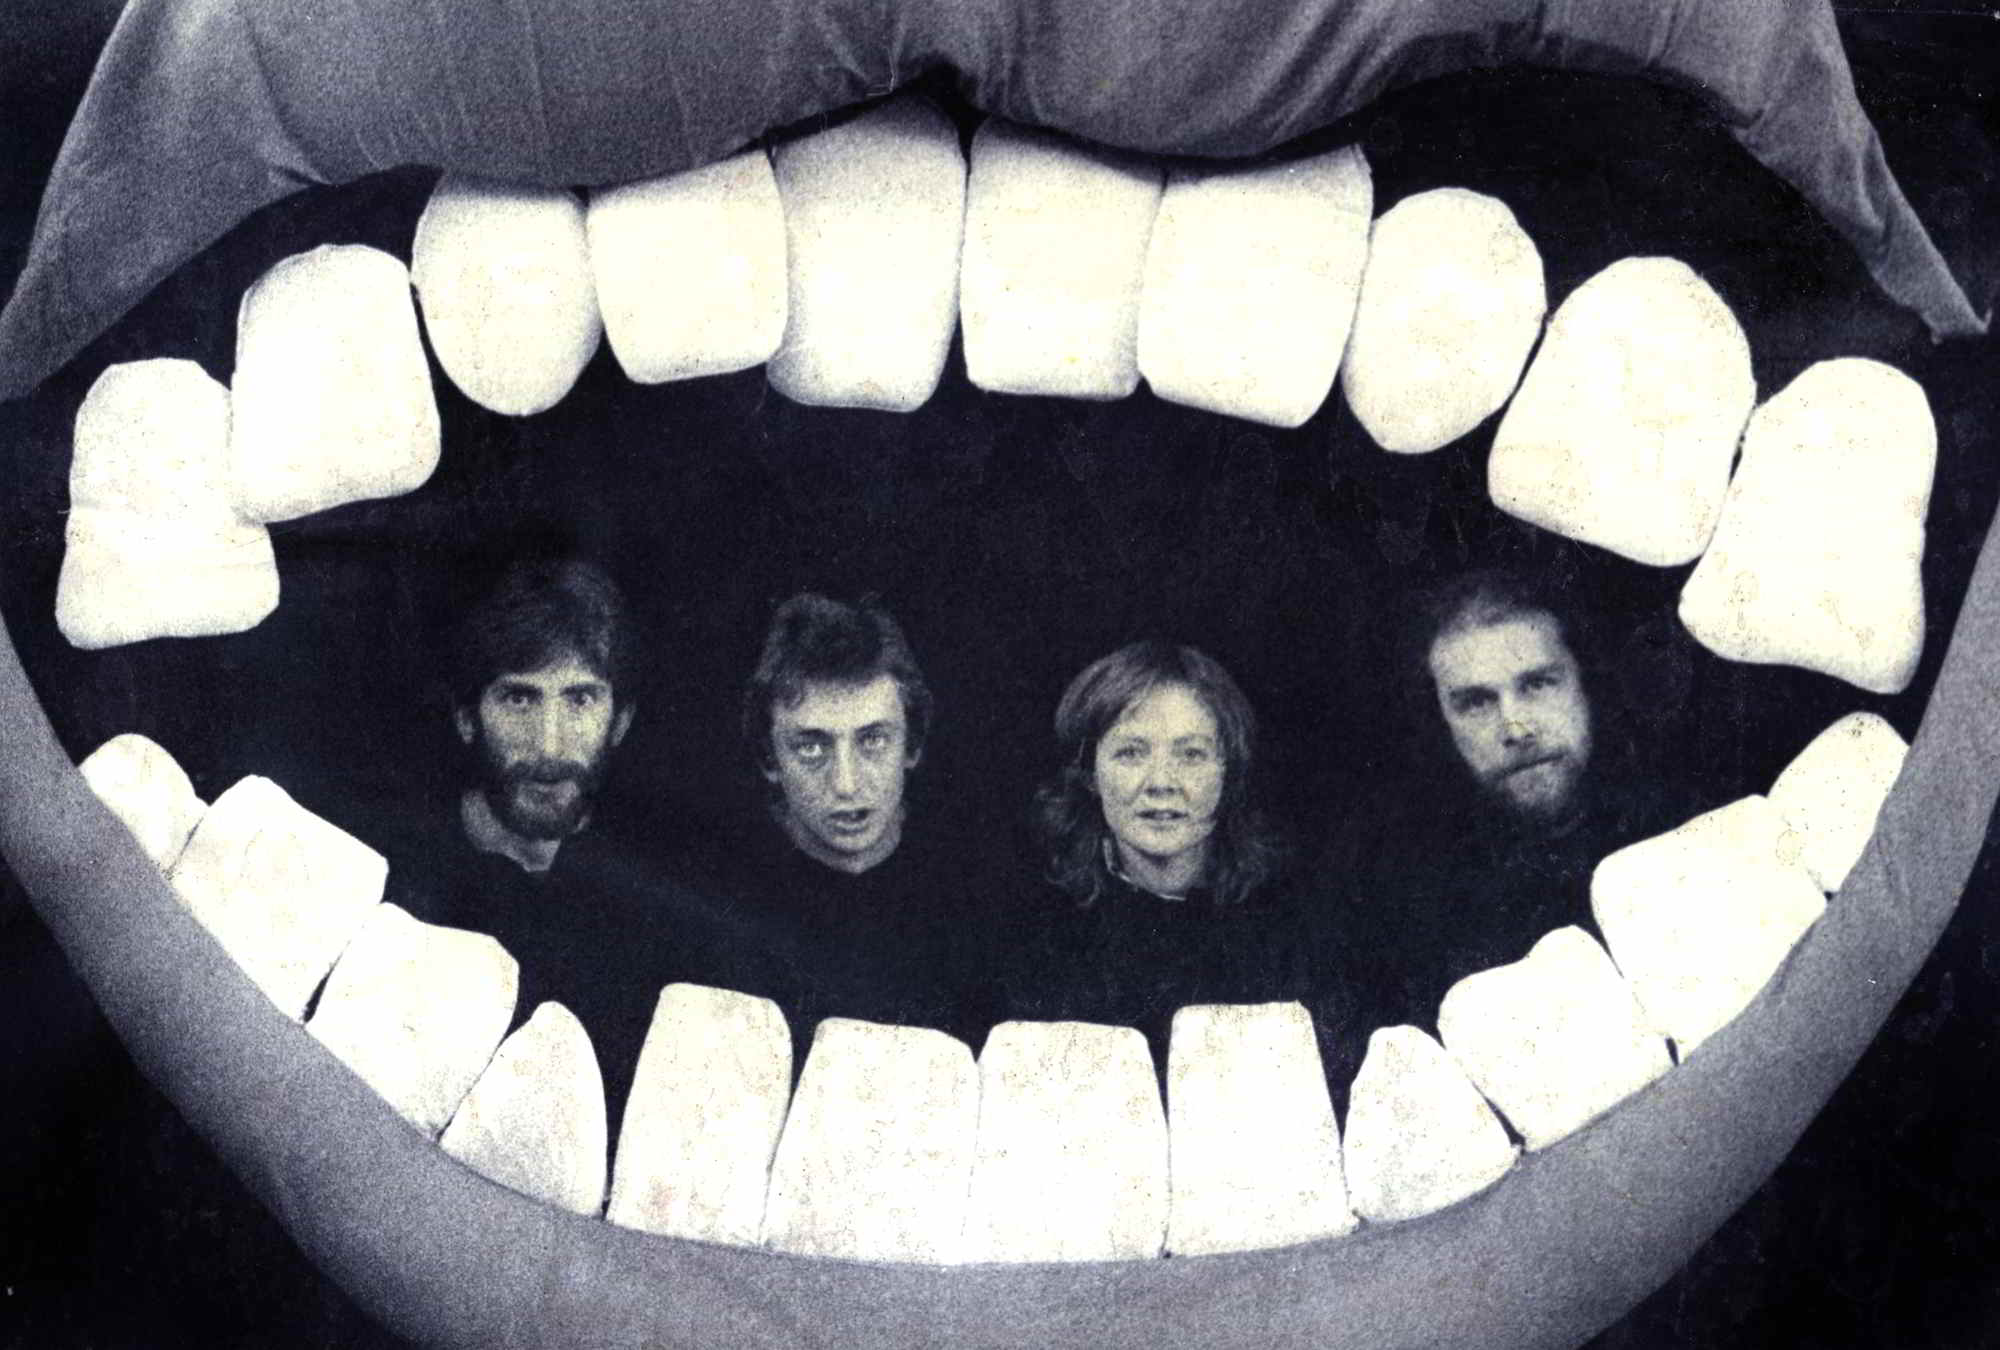 Handspan Theatre The Mouth Show cast 1979 portrait of four people inside the mouth